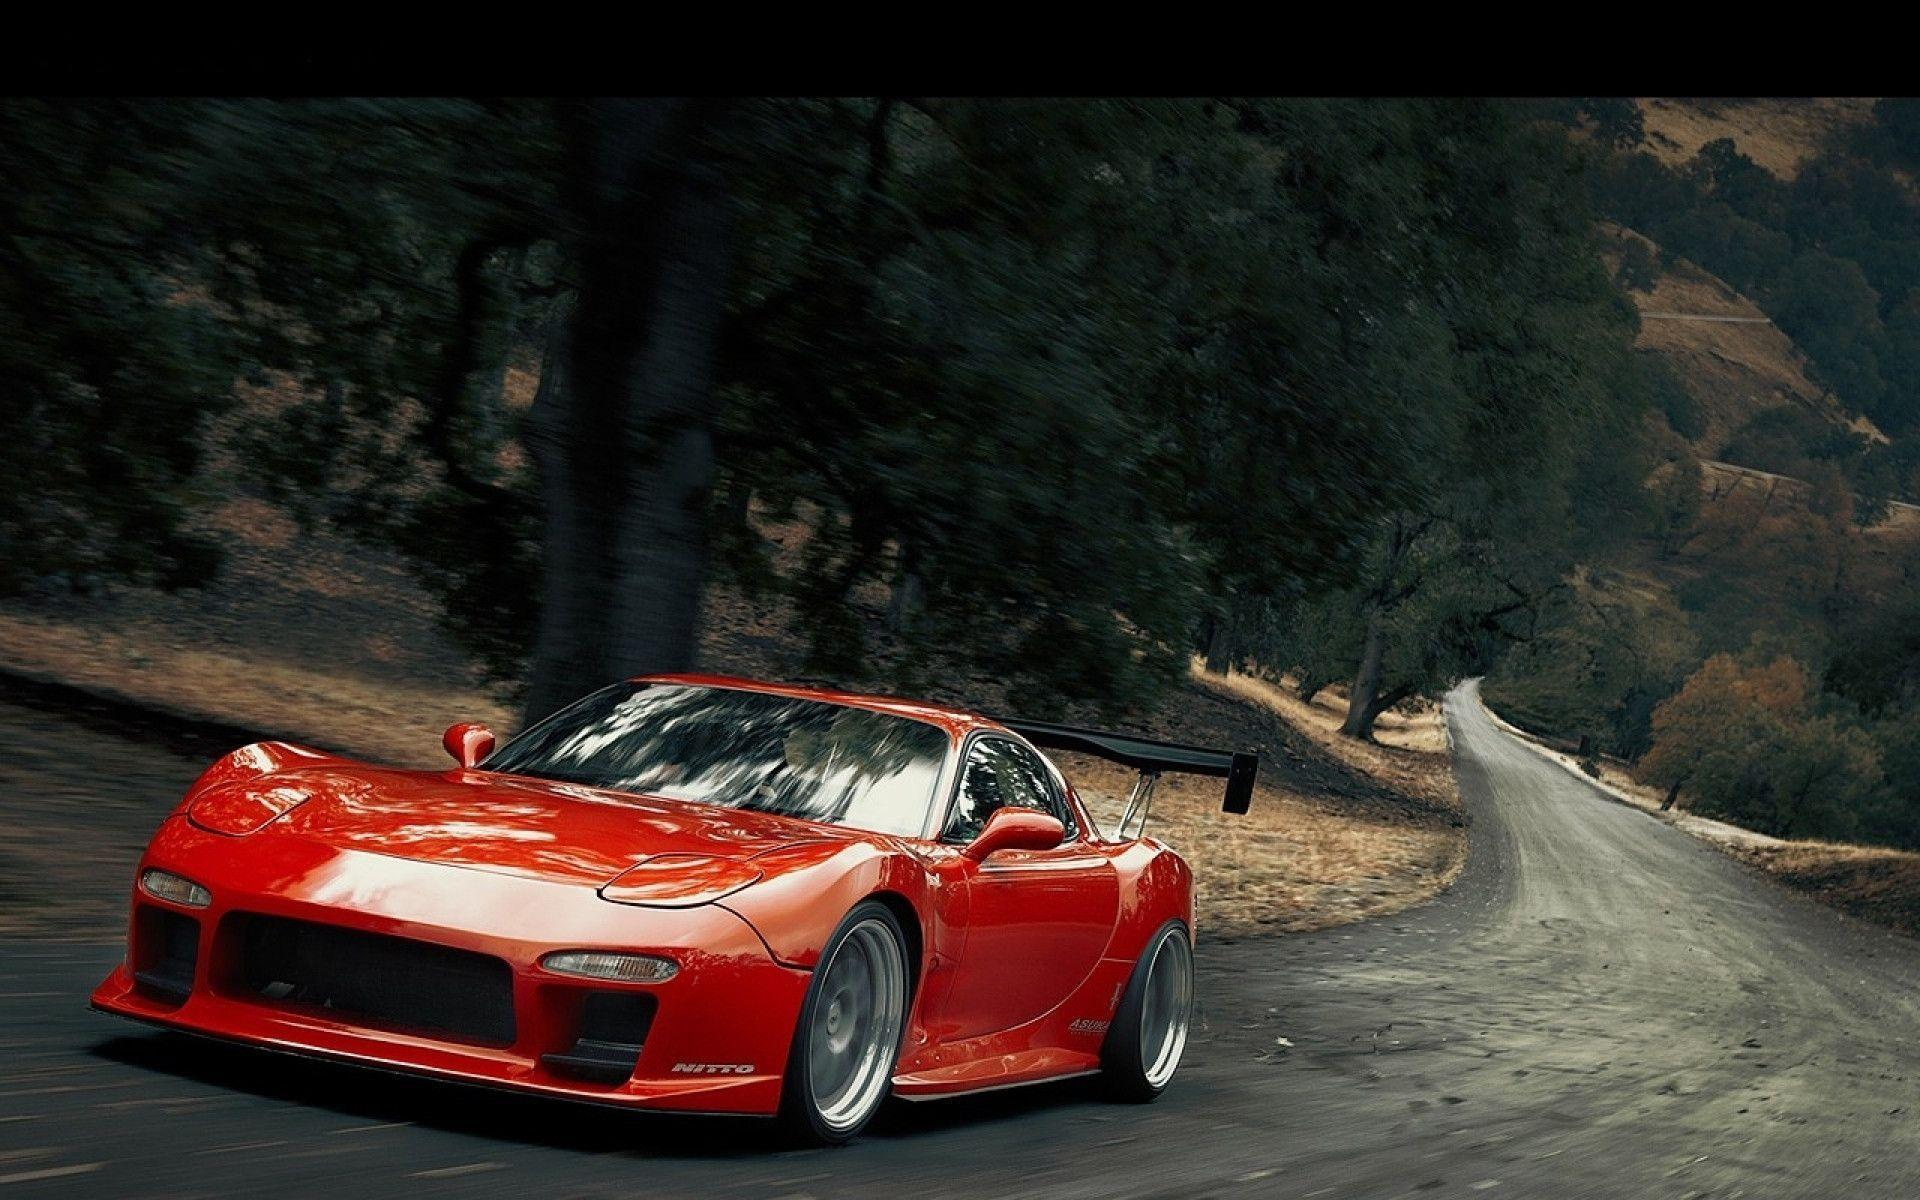 Marvelous JDM Mazda RX7 Photos Desktop Wallpaper | Car Zones